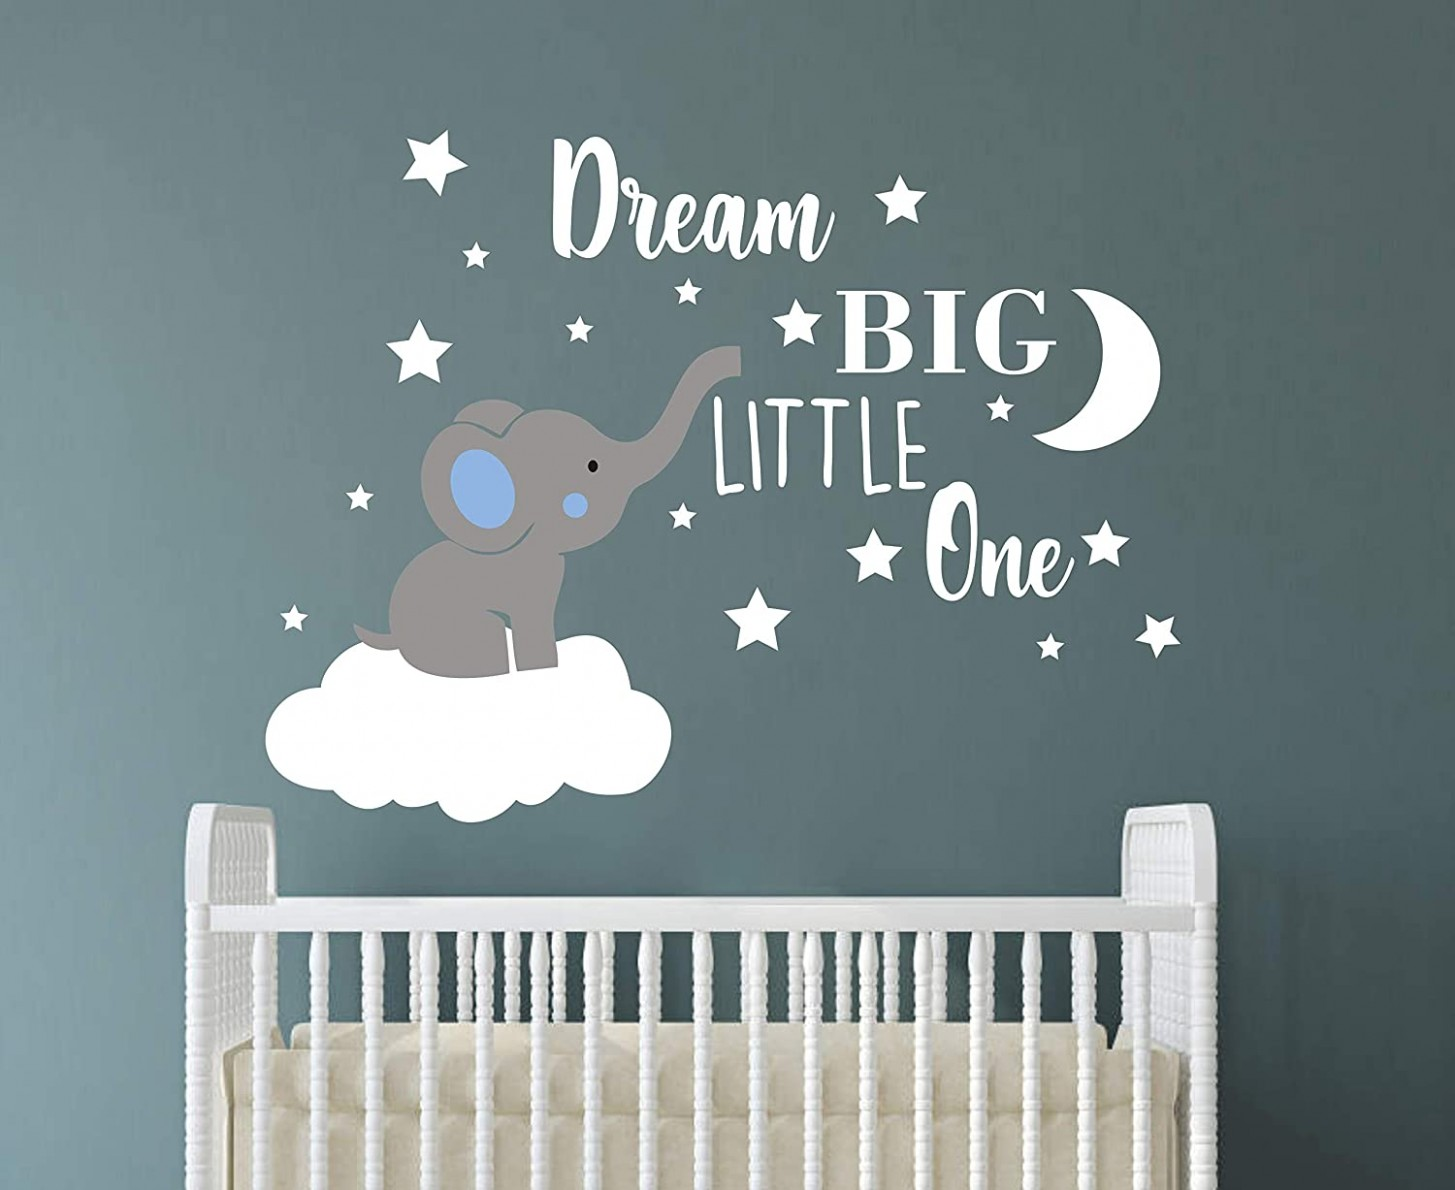 Dream Big Little One Elephant Wall Decal, Quote Wall Stickers, Baby Room  Wall Decor, Vinyl Wall Decals for Children Baby Kids Boy Girl Bedroom  Nursery  - Baby Room Wall Art